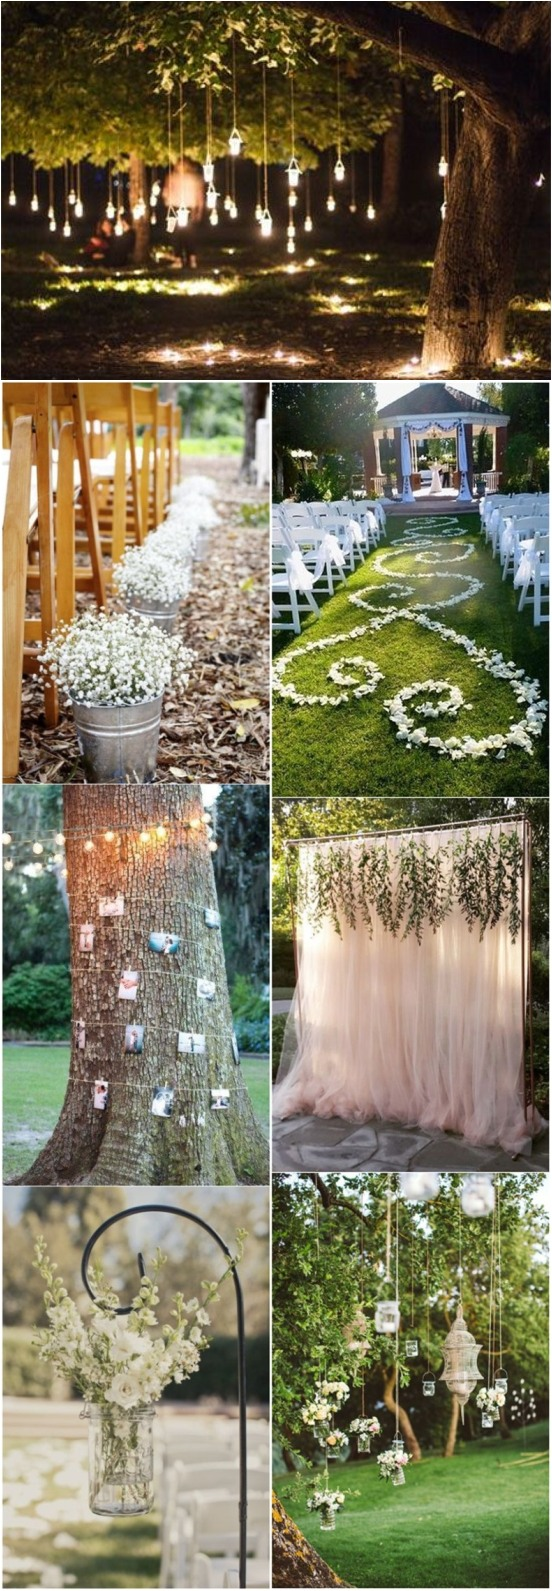 Outdoor weddings can be quite different because of the beauty of Mother Nature. That's why many couples choose to have an outdoor wedding to create a vivid memo